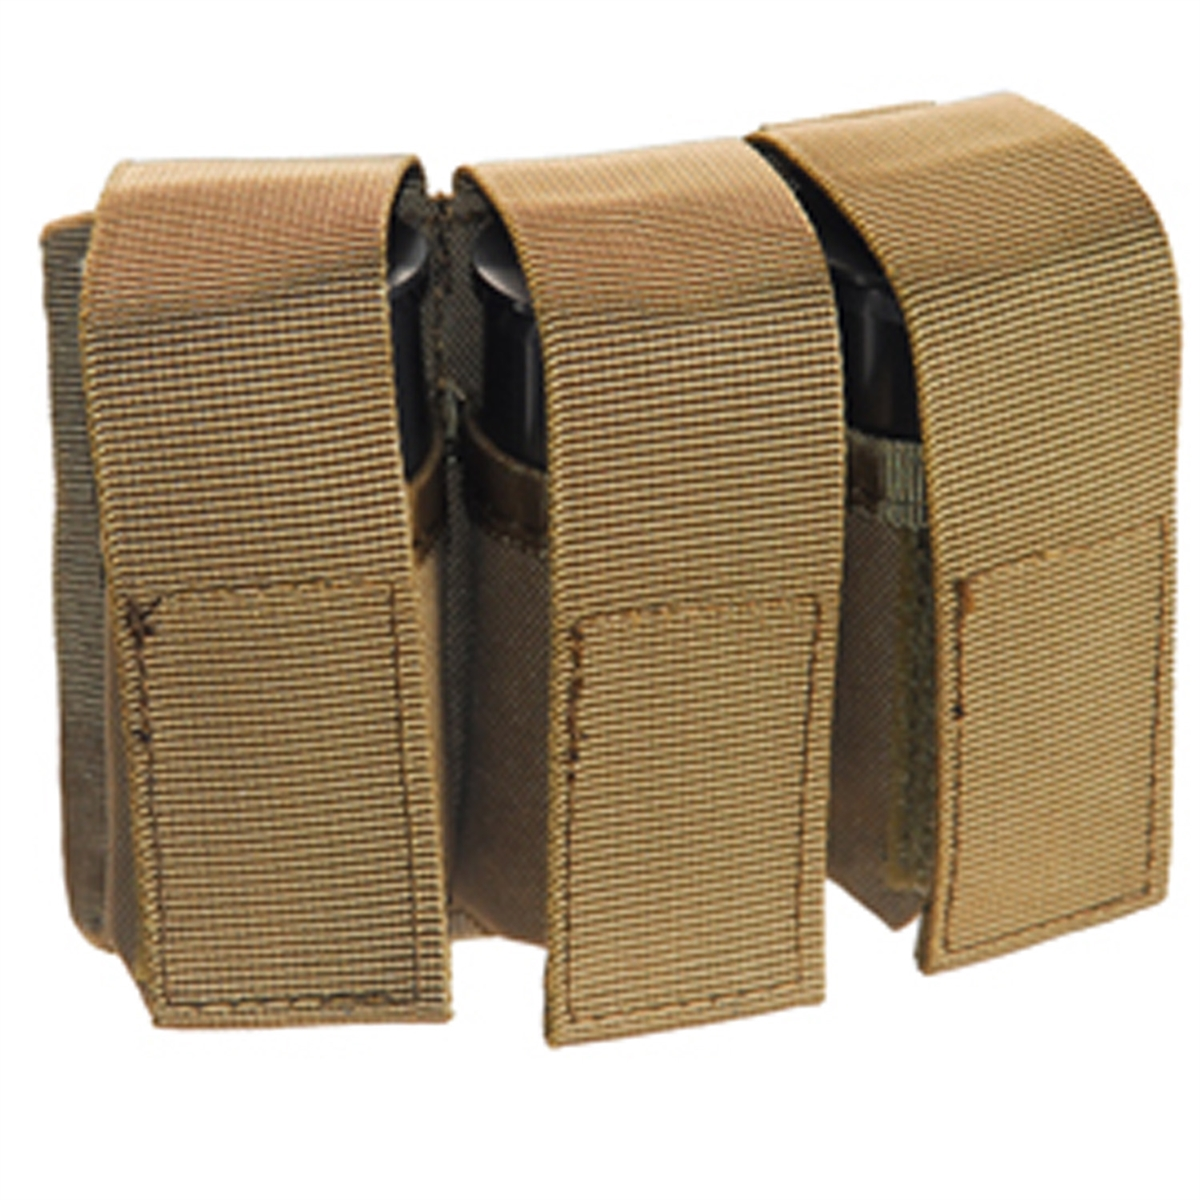 Airsoft 40mm MOLLE M203 Grenade Pouch (TAN) for CA-5xx and CA-60x Grenades by